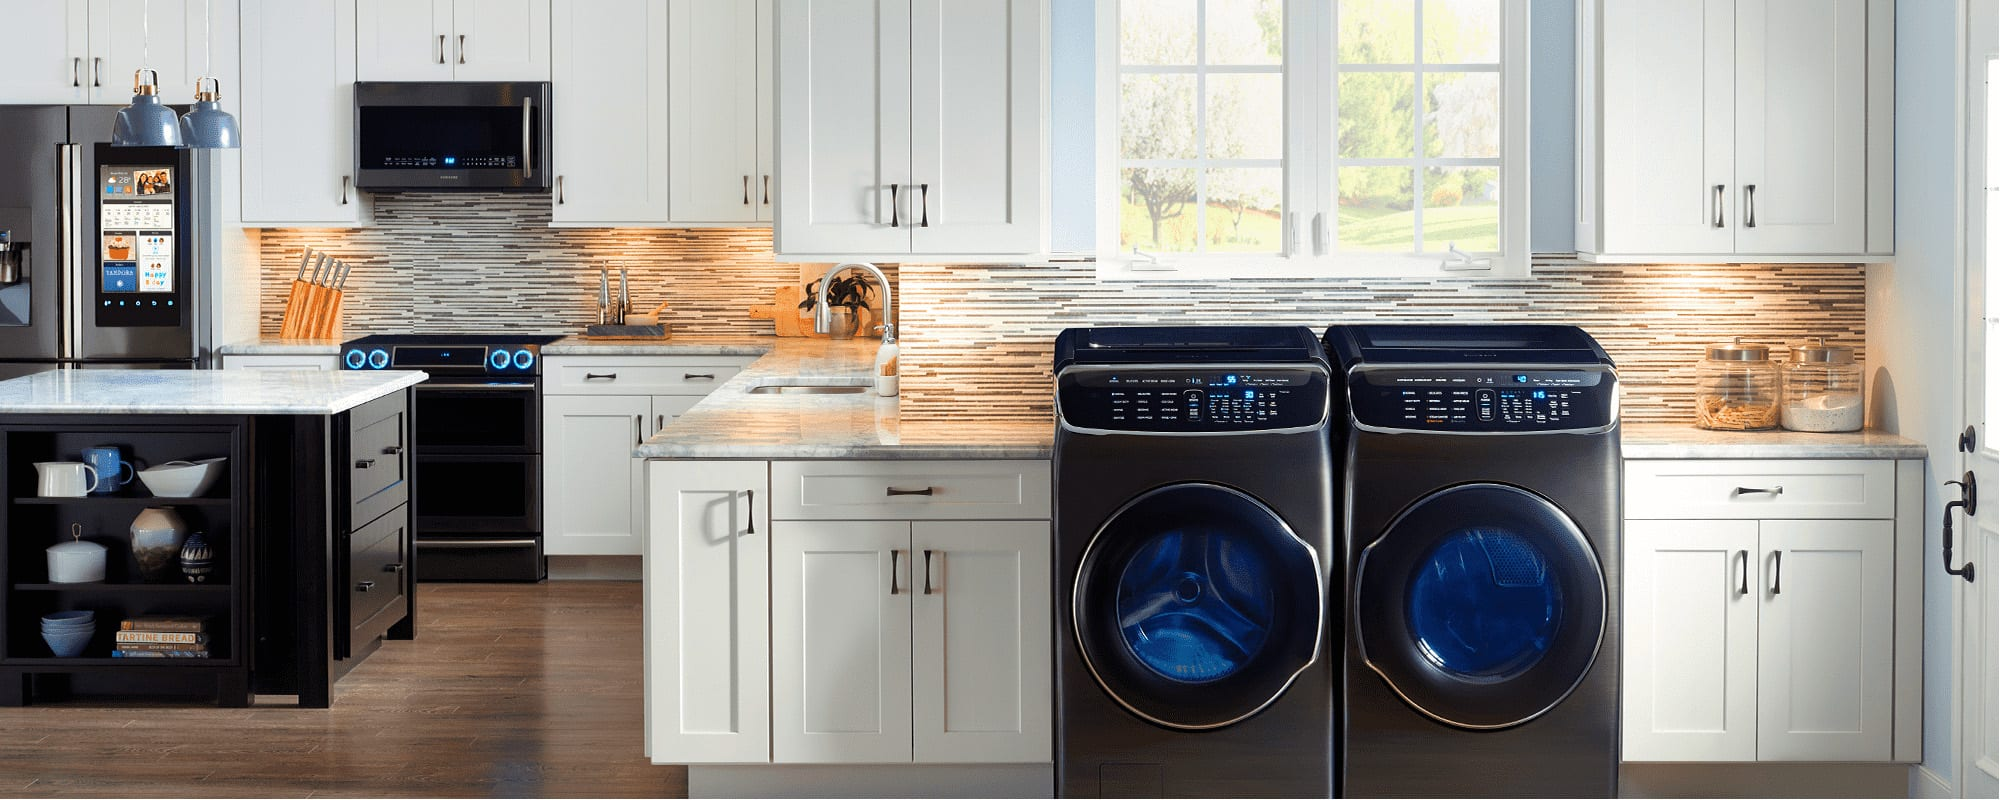 Samsung Kitchen Package - Save 10% | Tony\'s Appliance